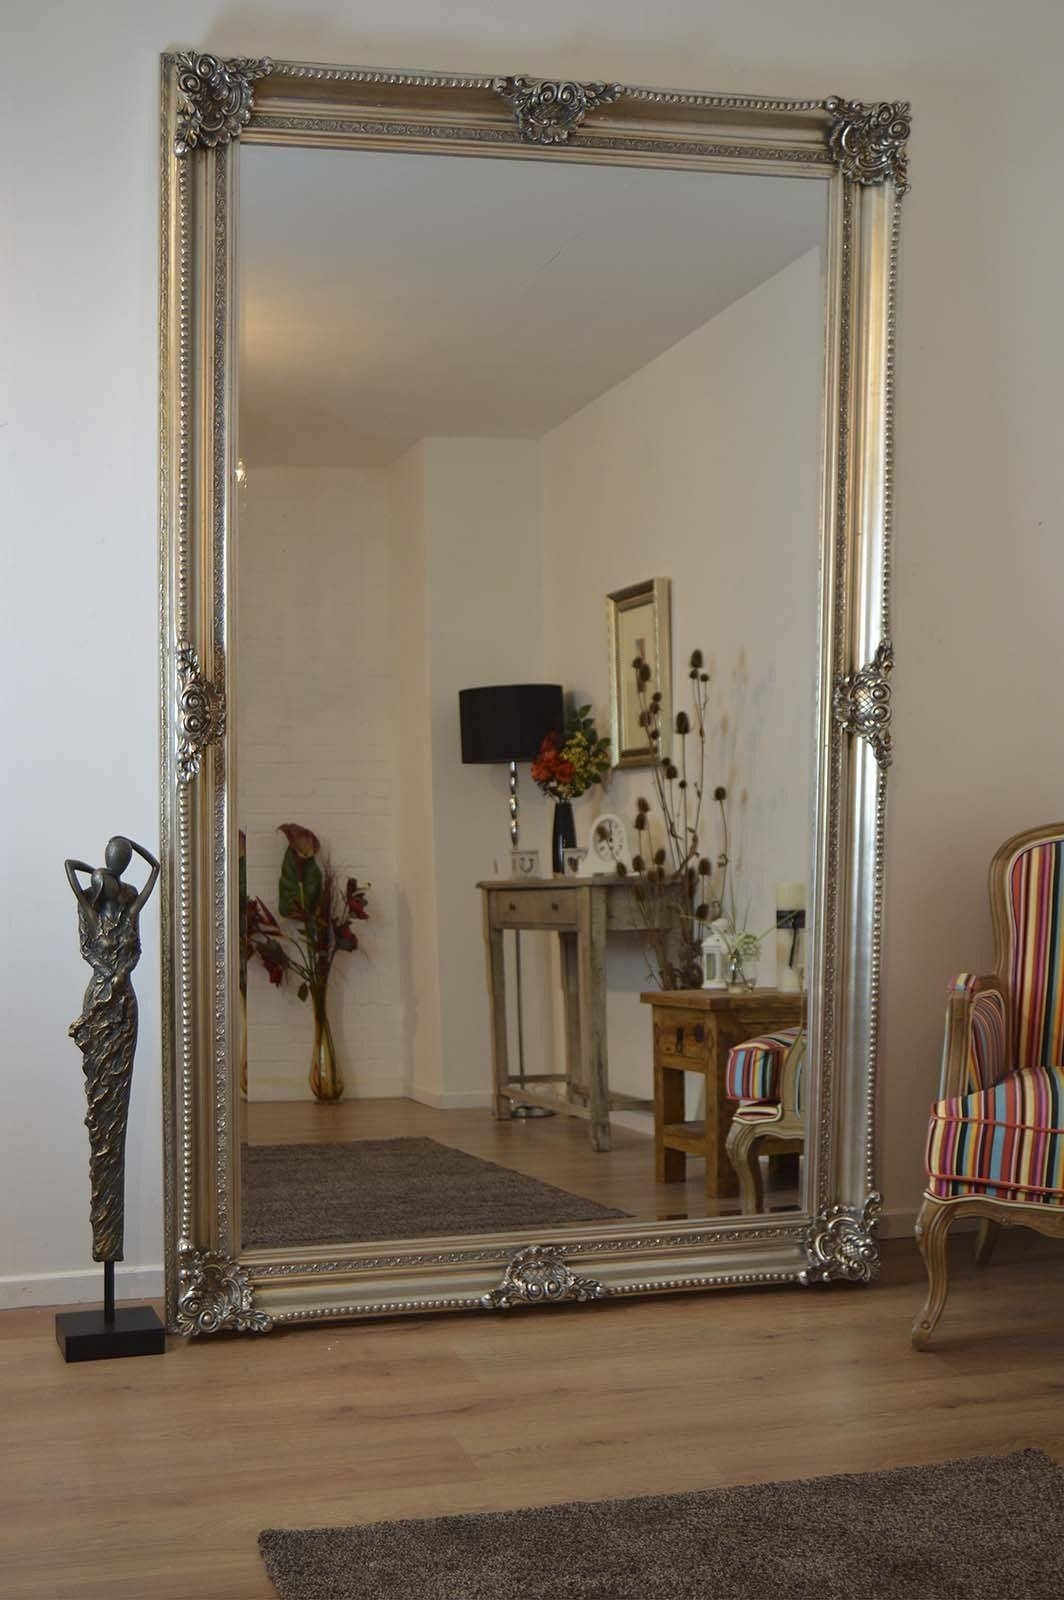 Old Fashioned Wall Mirrors Antique Mirror Wall Covering Vintage pertaining to Old Looking Mirrors (Image 12 of 15)